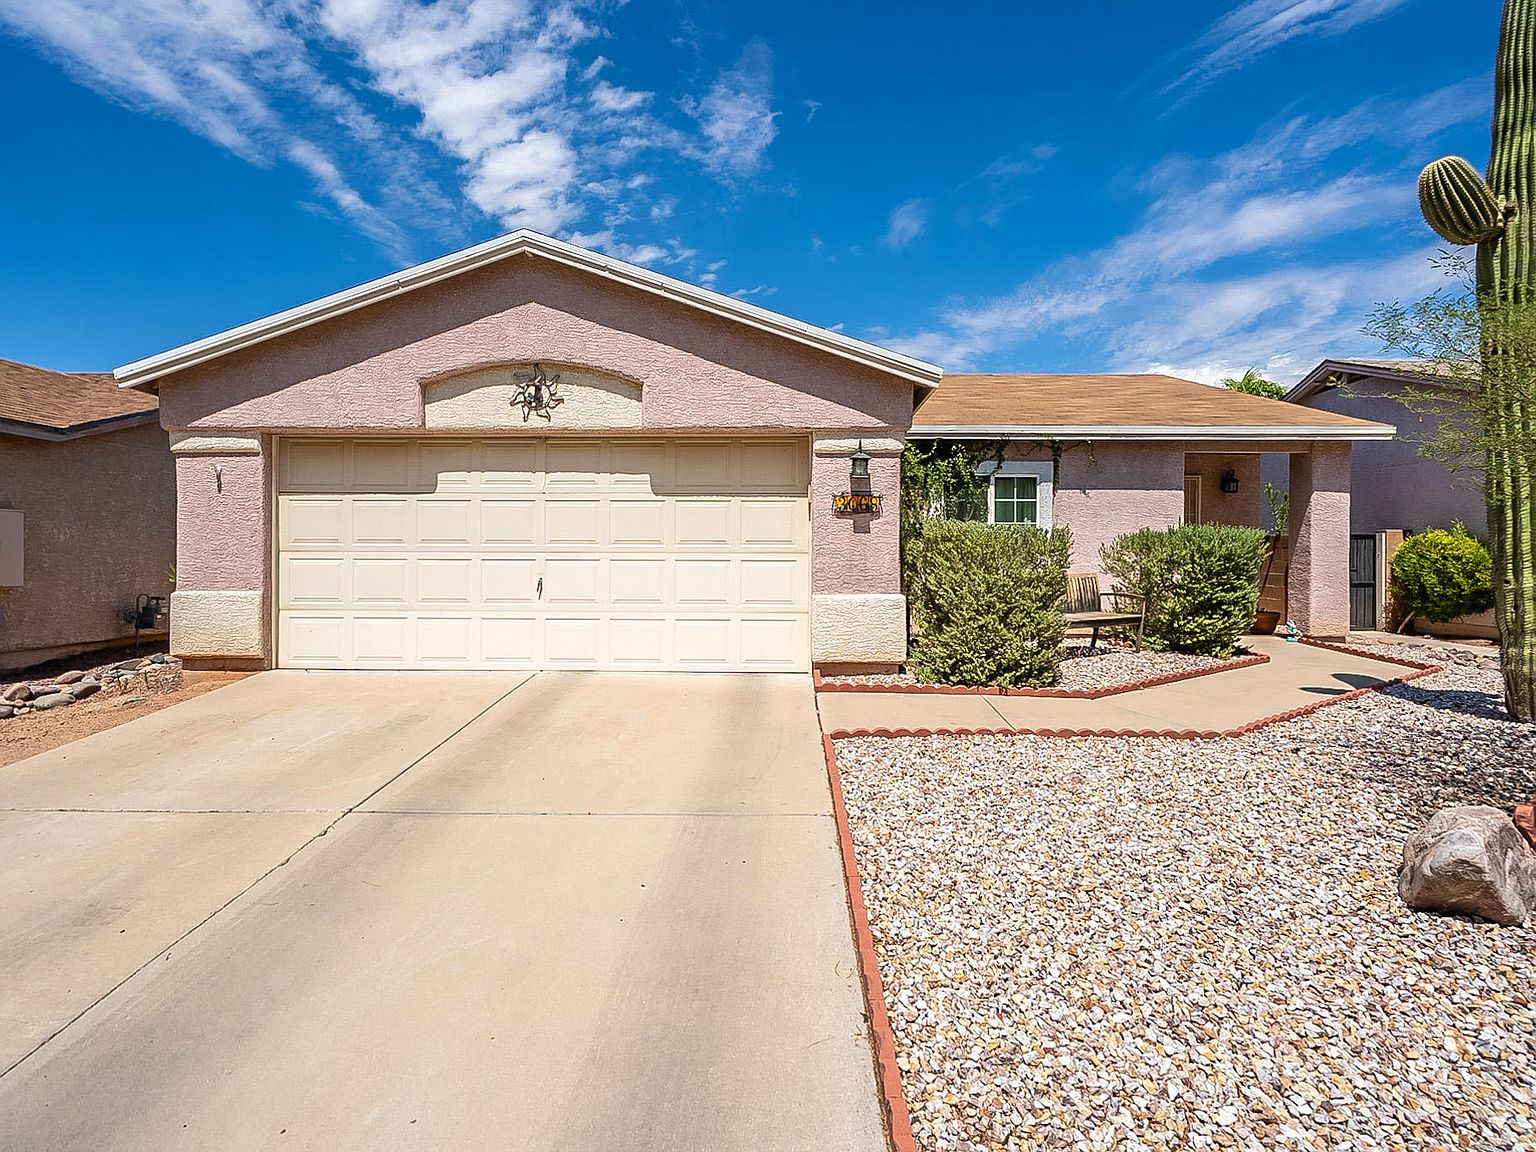 3068 W Windsor Crest Pl Tucson Az 85742 Zillow